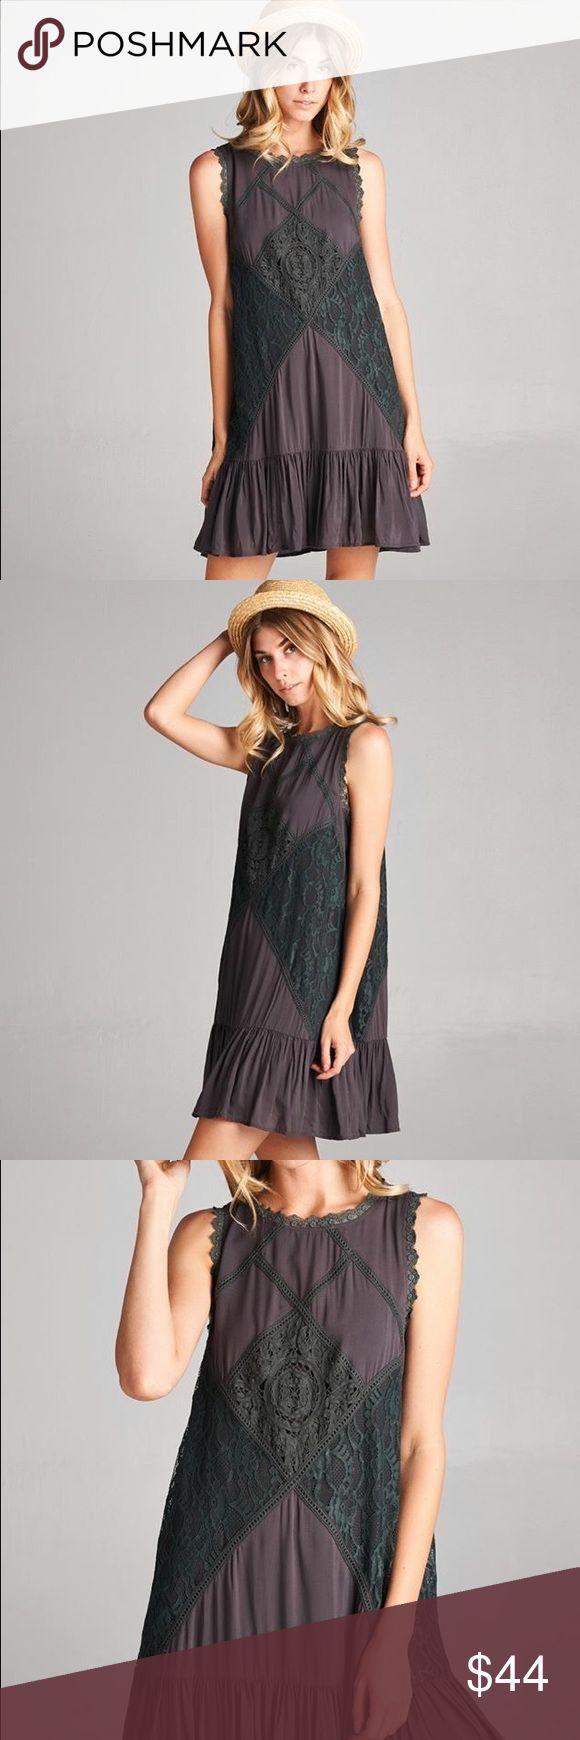 The Brisa Dress The Brisa Dress is a Round neck, sleeveless A-line dress with contrast lace trim and a ruffled trumpet skirt.  Plum/Brown in color. Owl About Happy Dresses